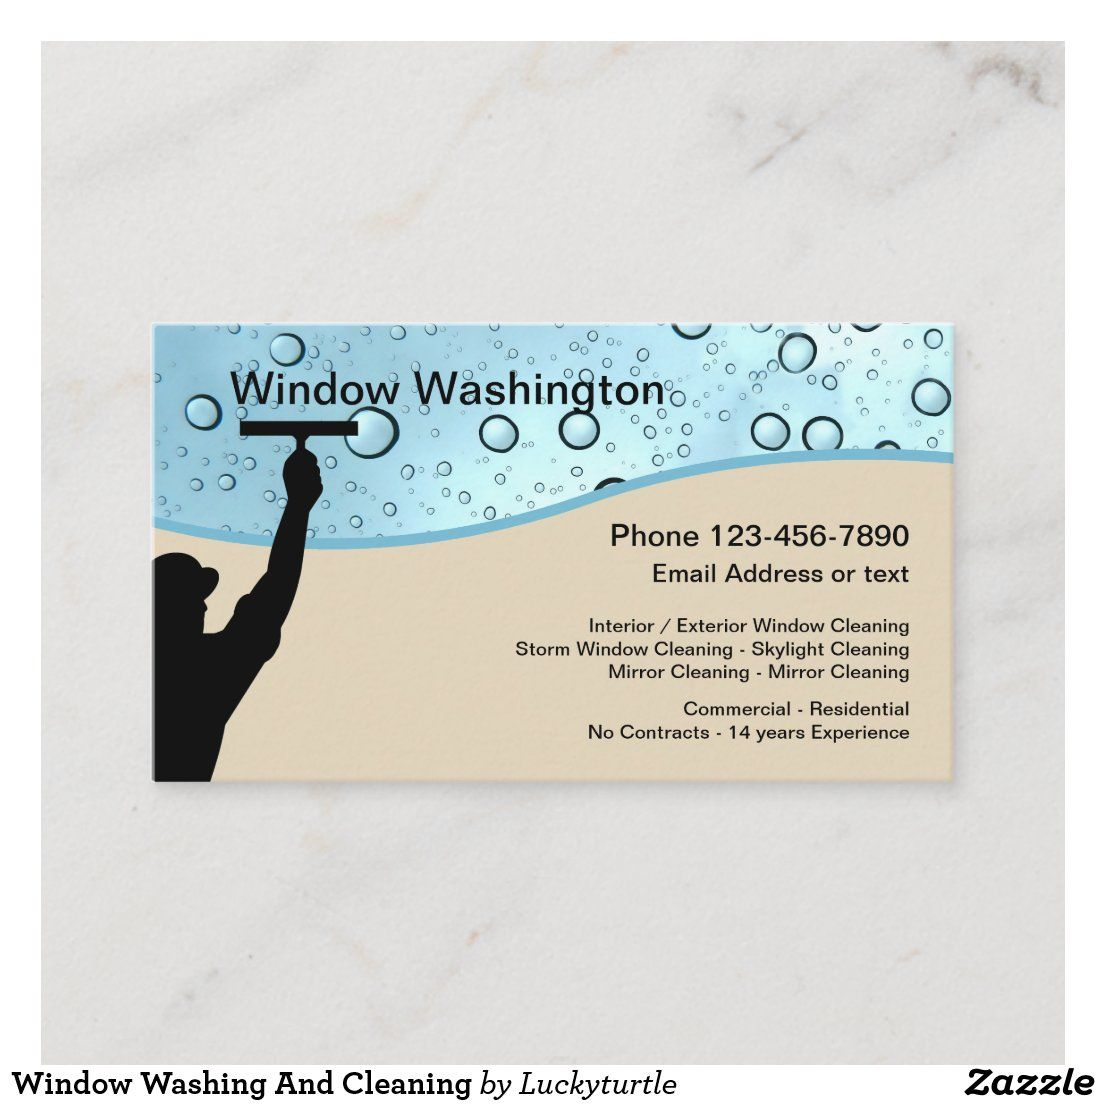 Window Washing And Cleaning Business Card Zazzle Com Cleaning Business Cards Washing Windows Cleaning Business